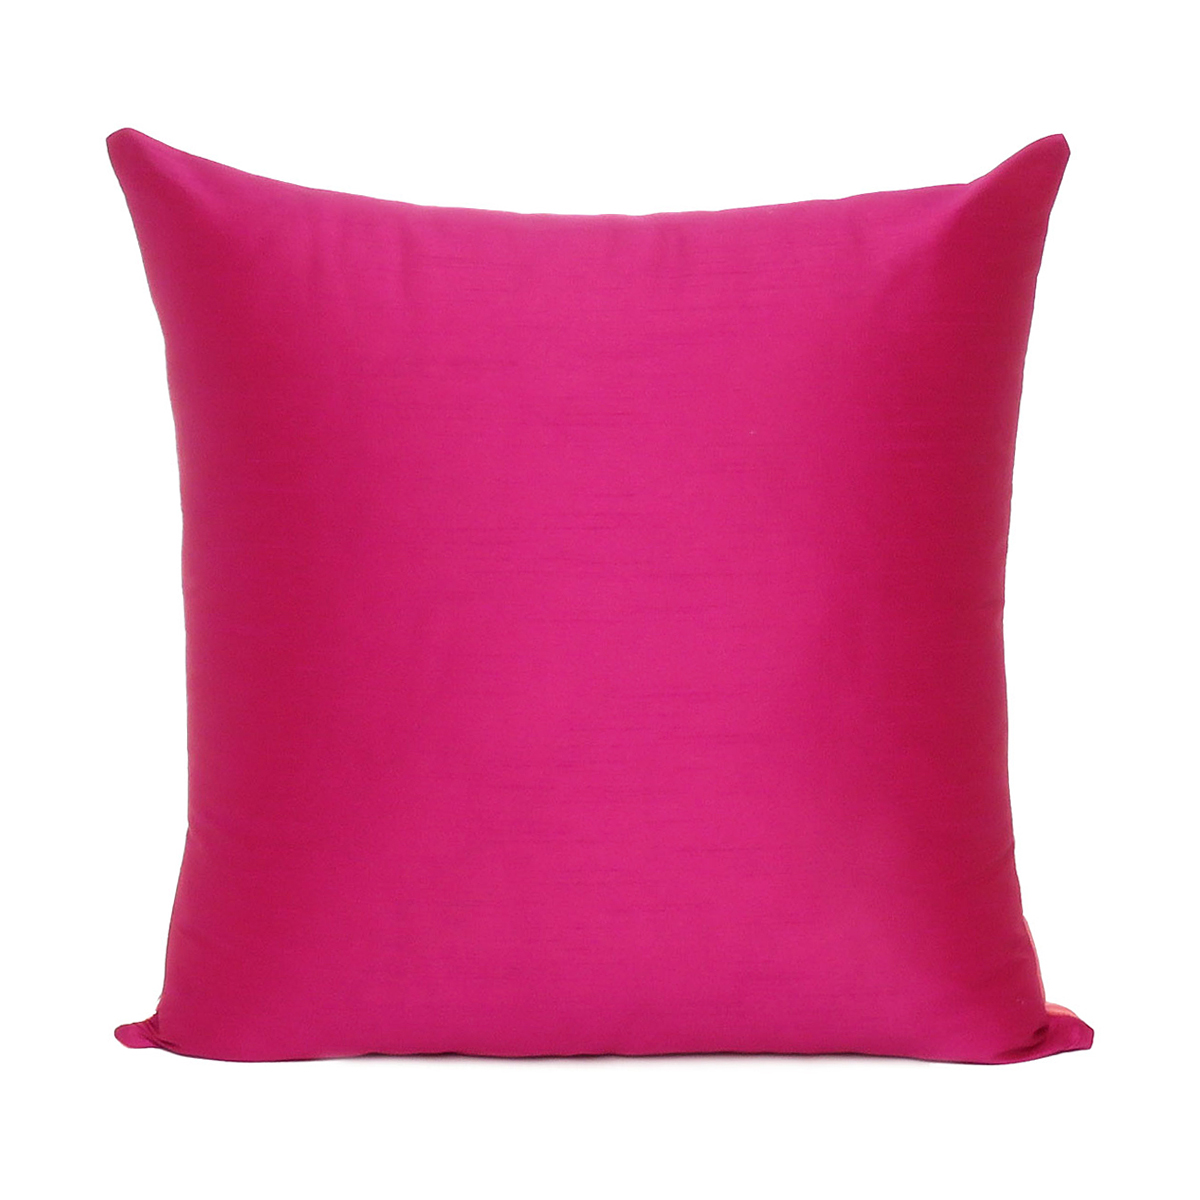 Vibrant Decorative Throw Pillows Double Sided Cushion Coses Outdoor